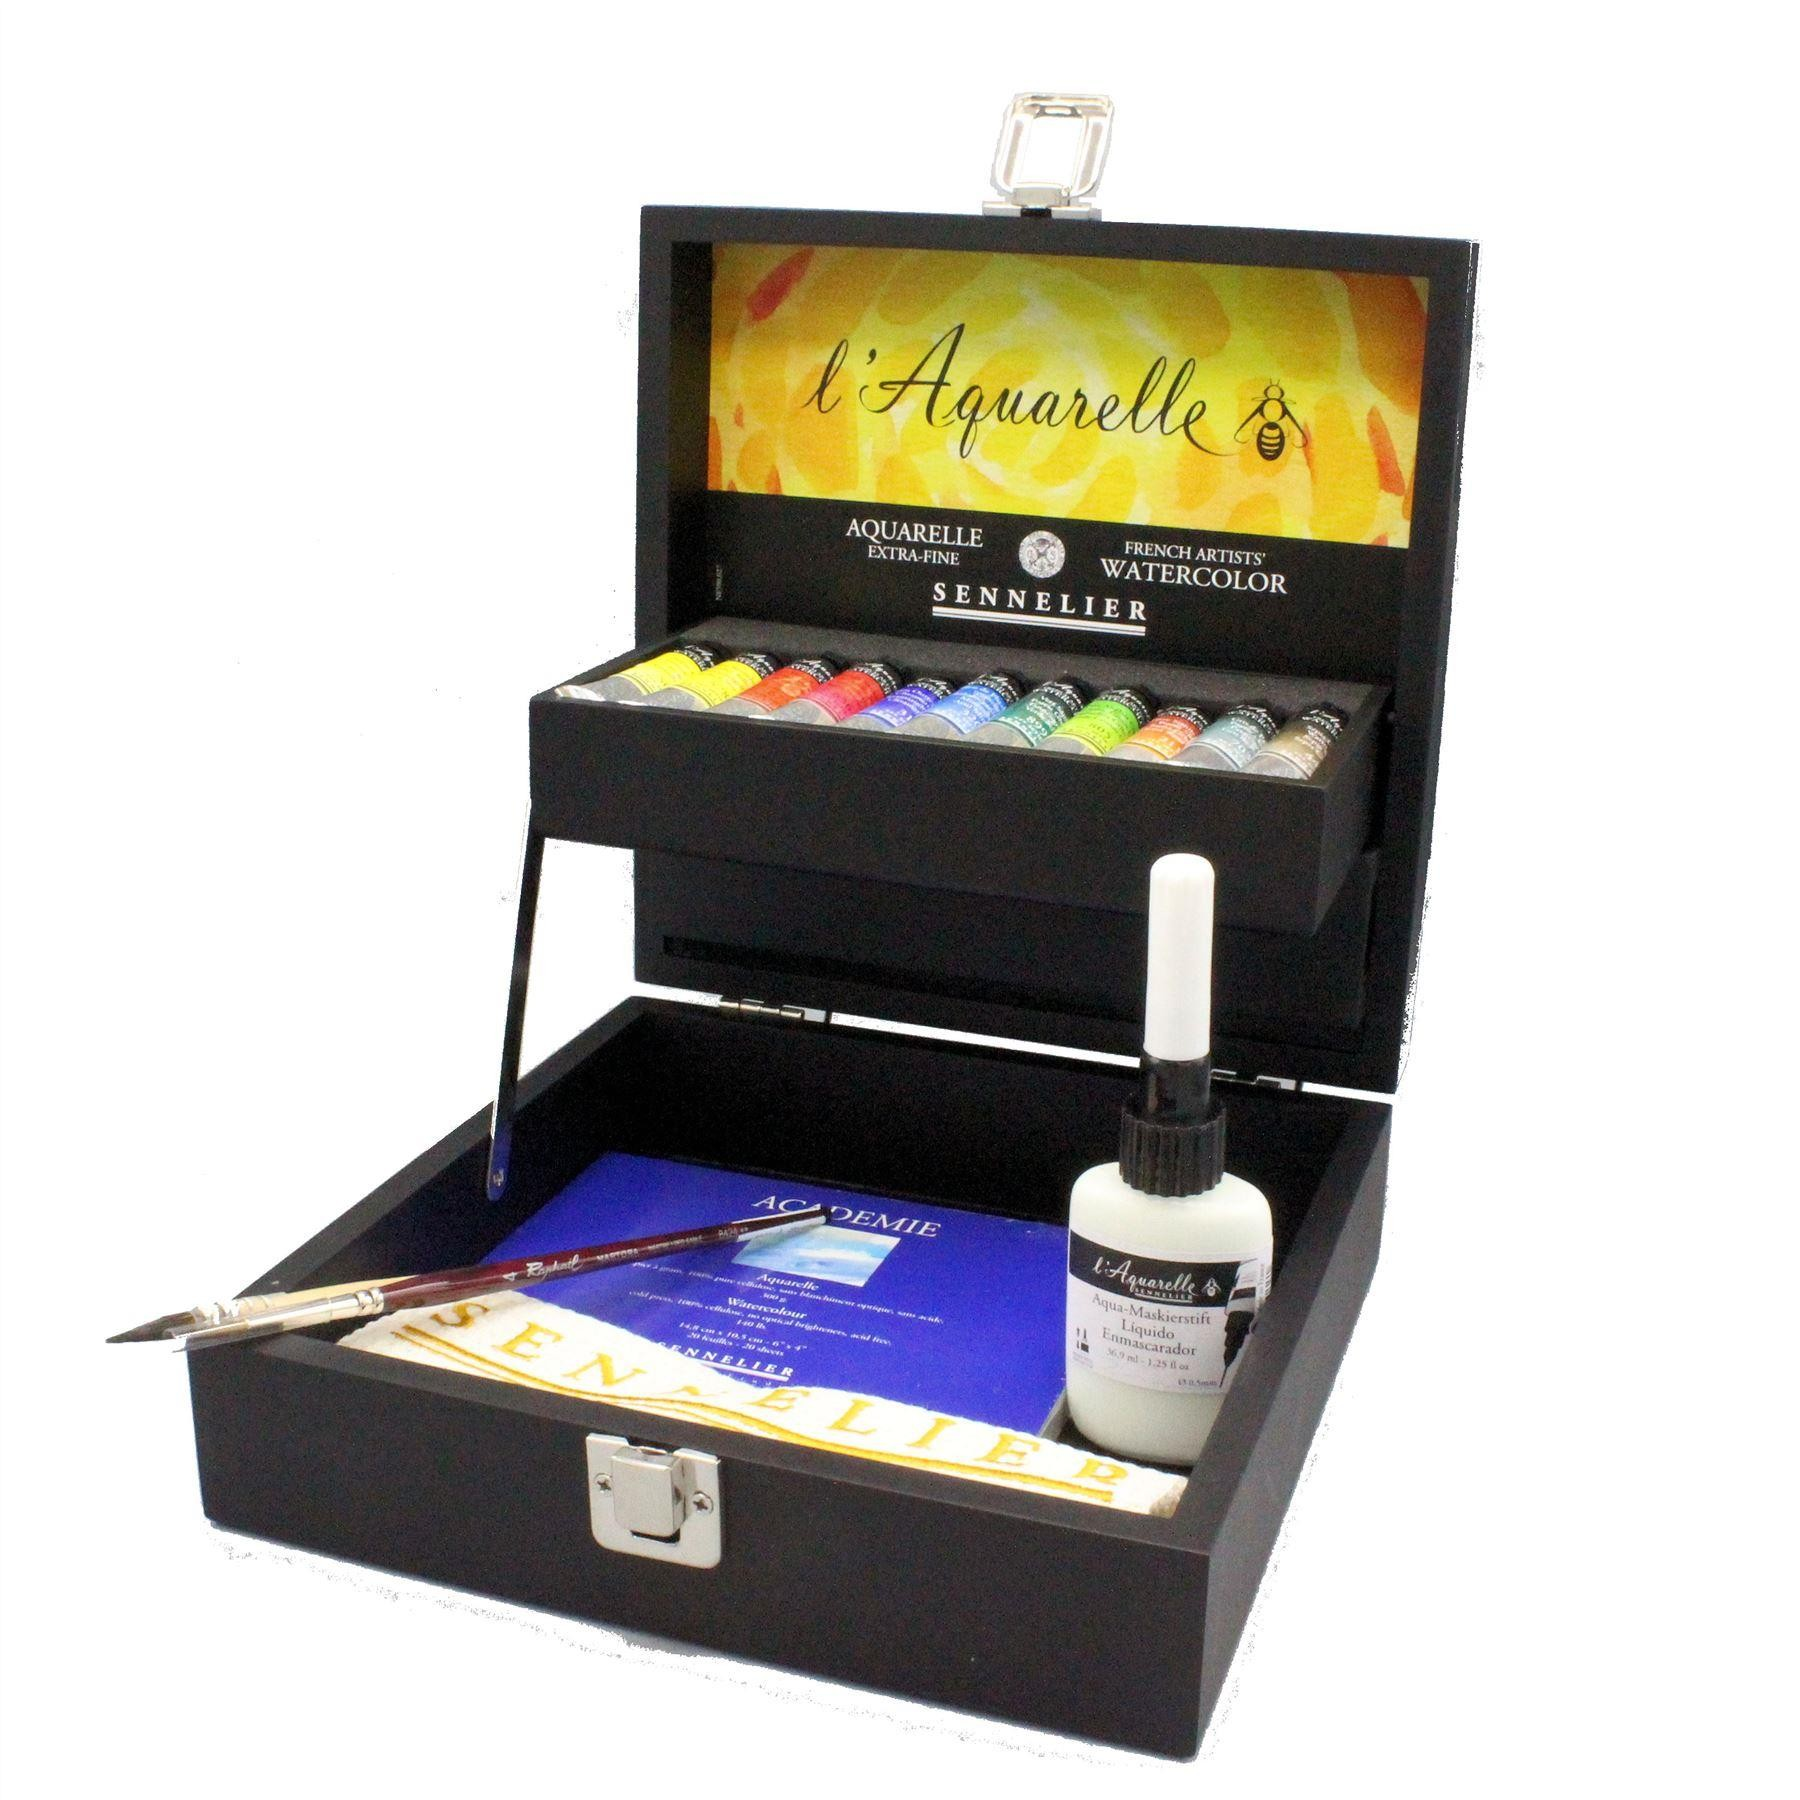 sennelier artists watercolour paint set in black box